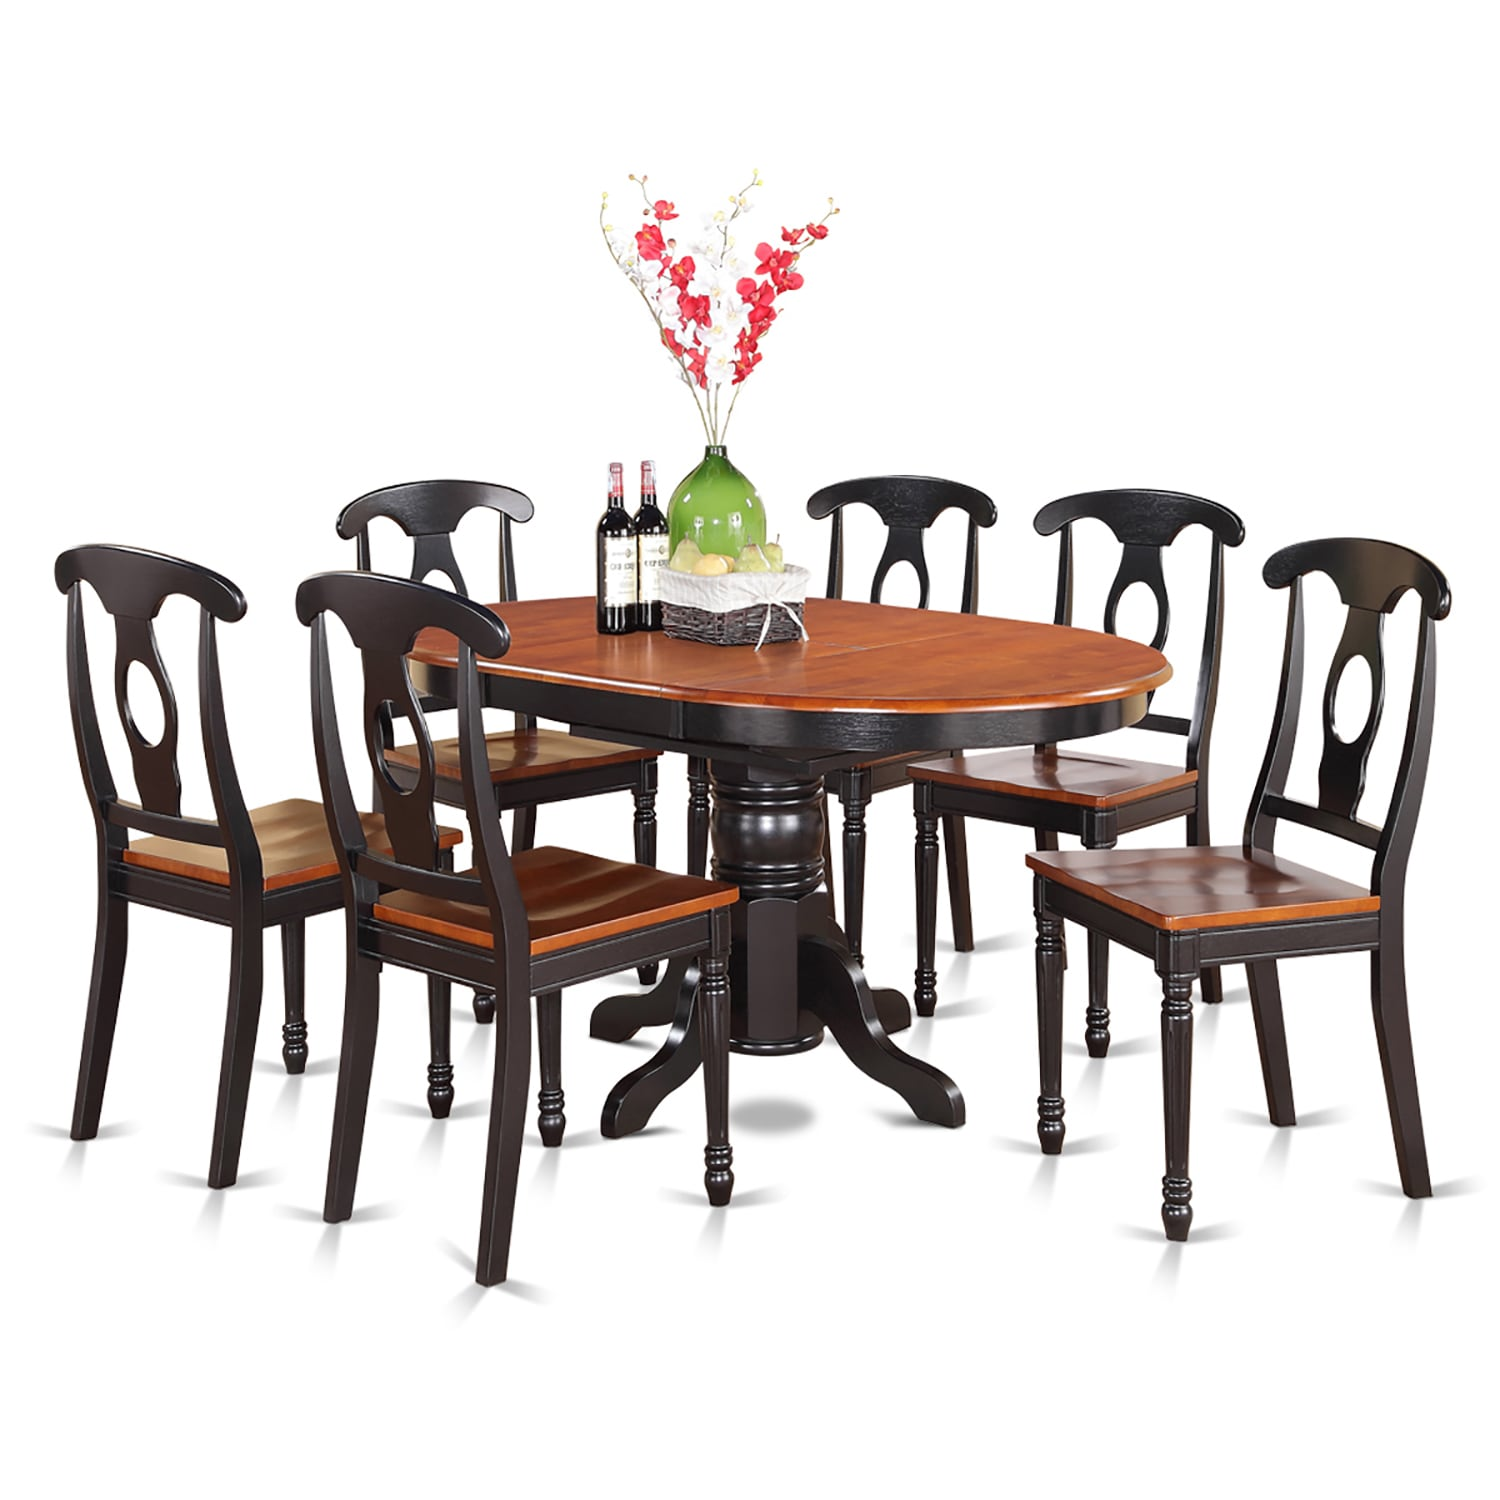 7-piece Pedestal Oval Dining Table and 6 Dining Chairs